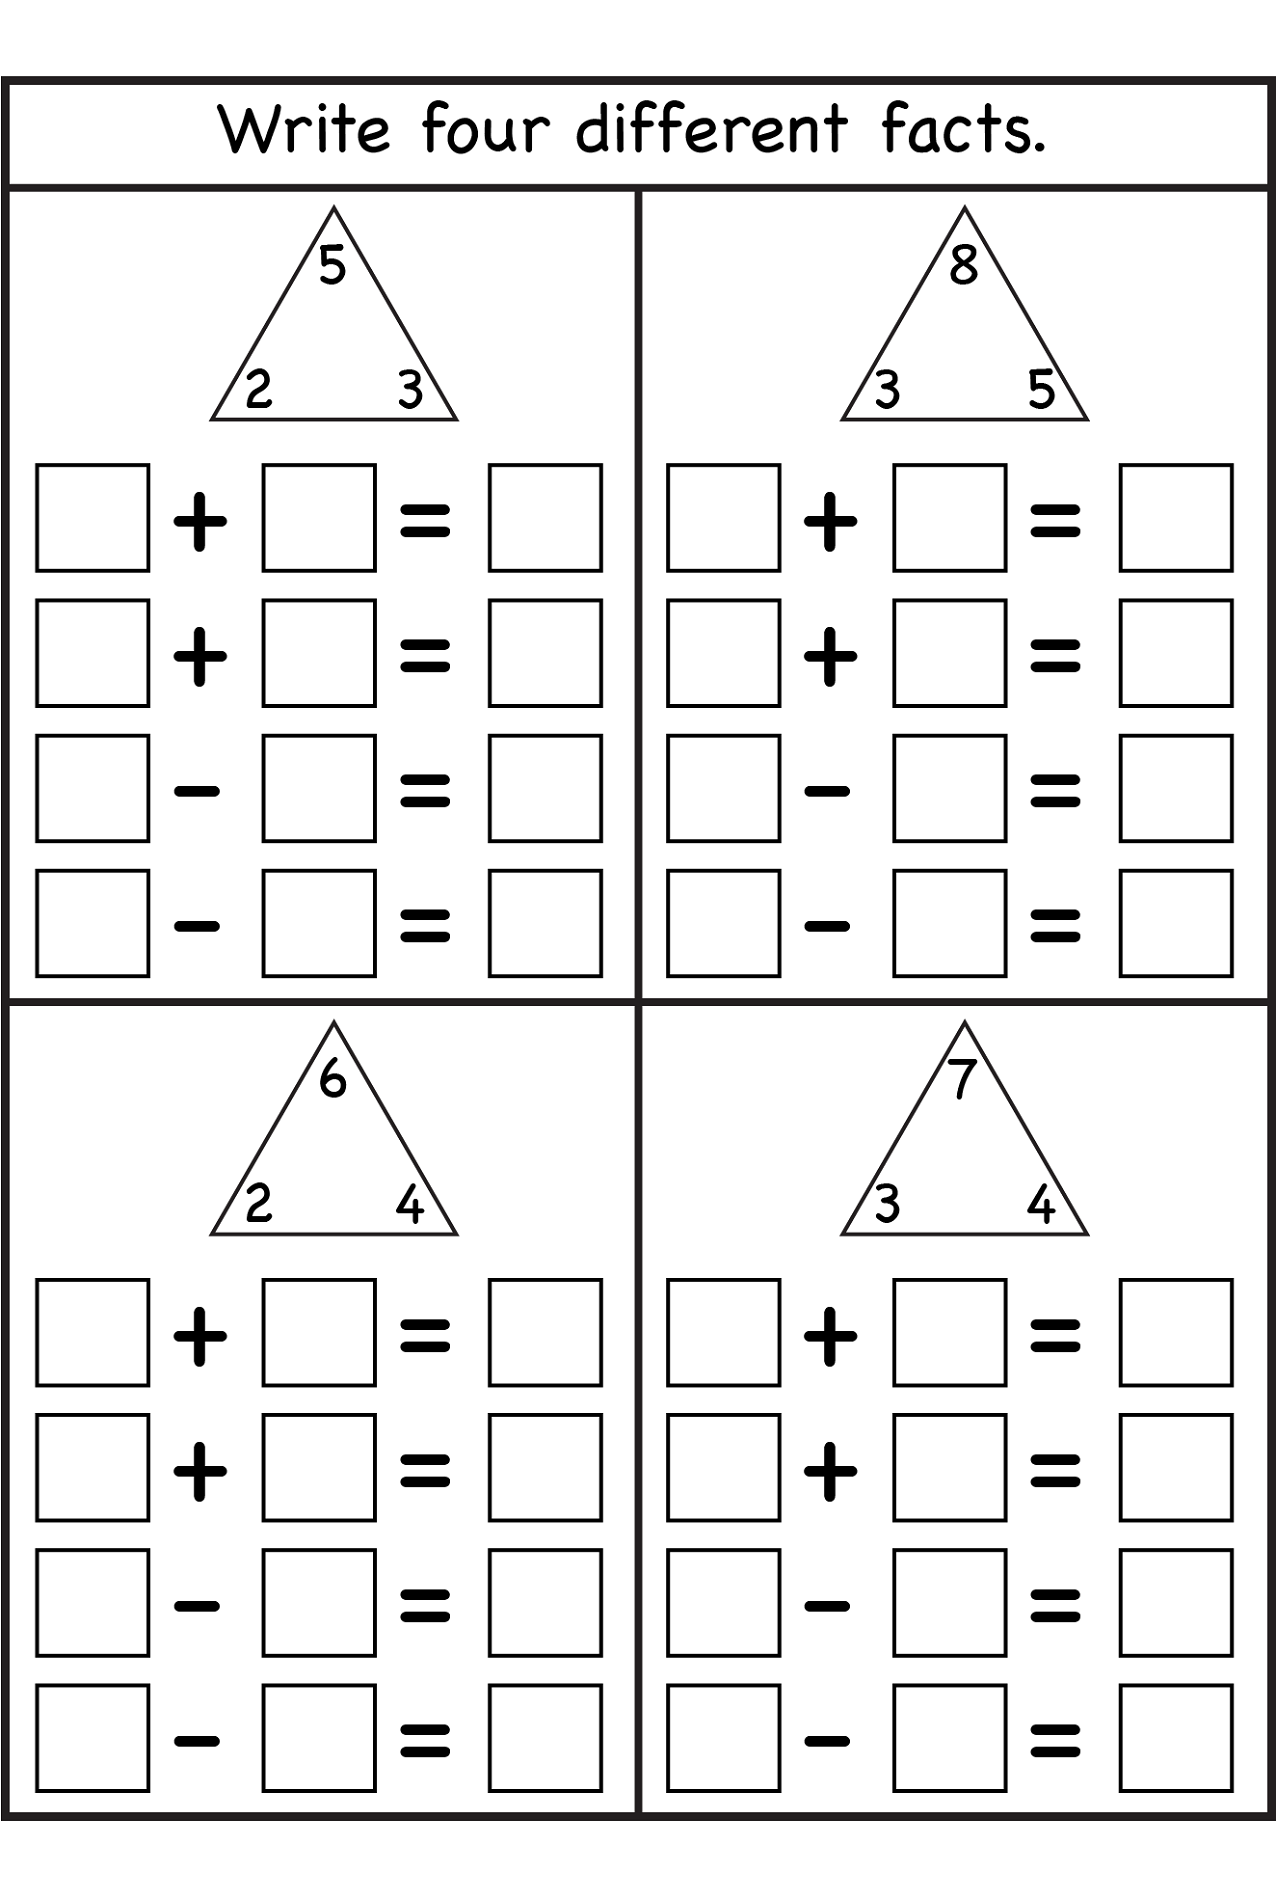 Free Worksheet Fact Families Worksheets blank fact family worksheets activity shelter printable